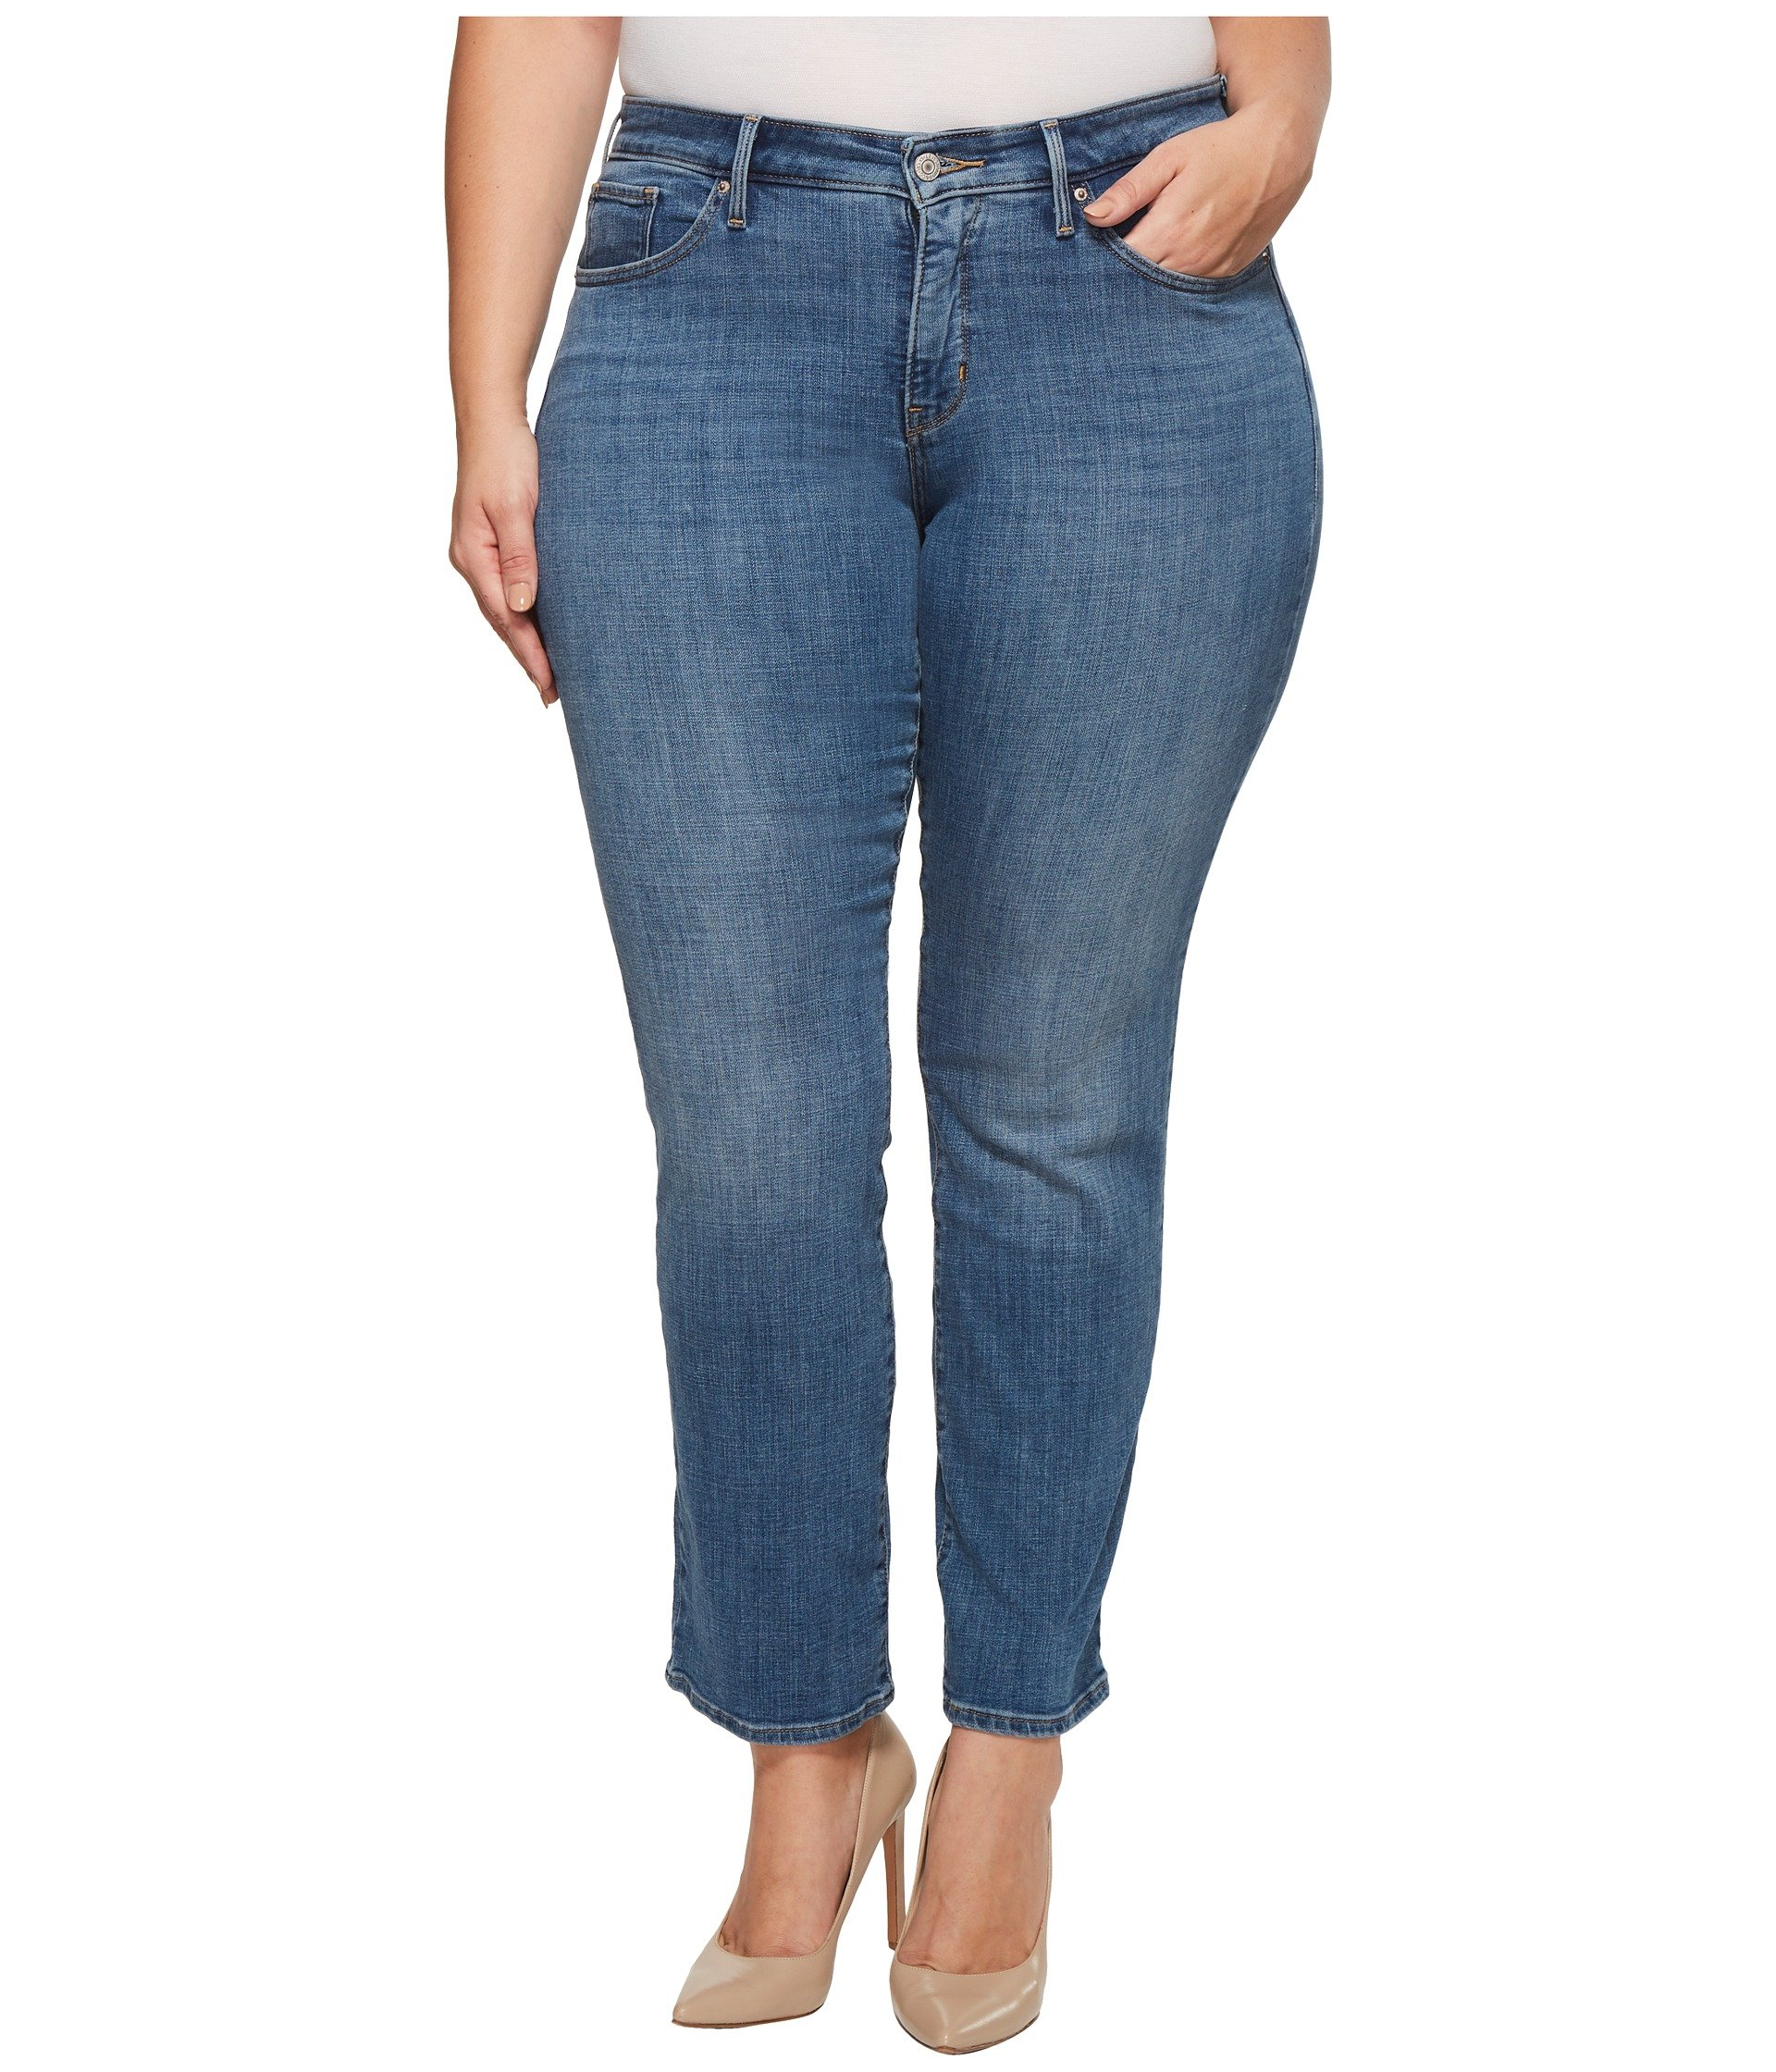 Levi's Women's Plus Size 314 Shaping Straight Jeans, Indigo Anomaly, 44 (US 24) R